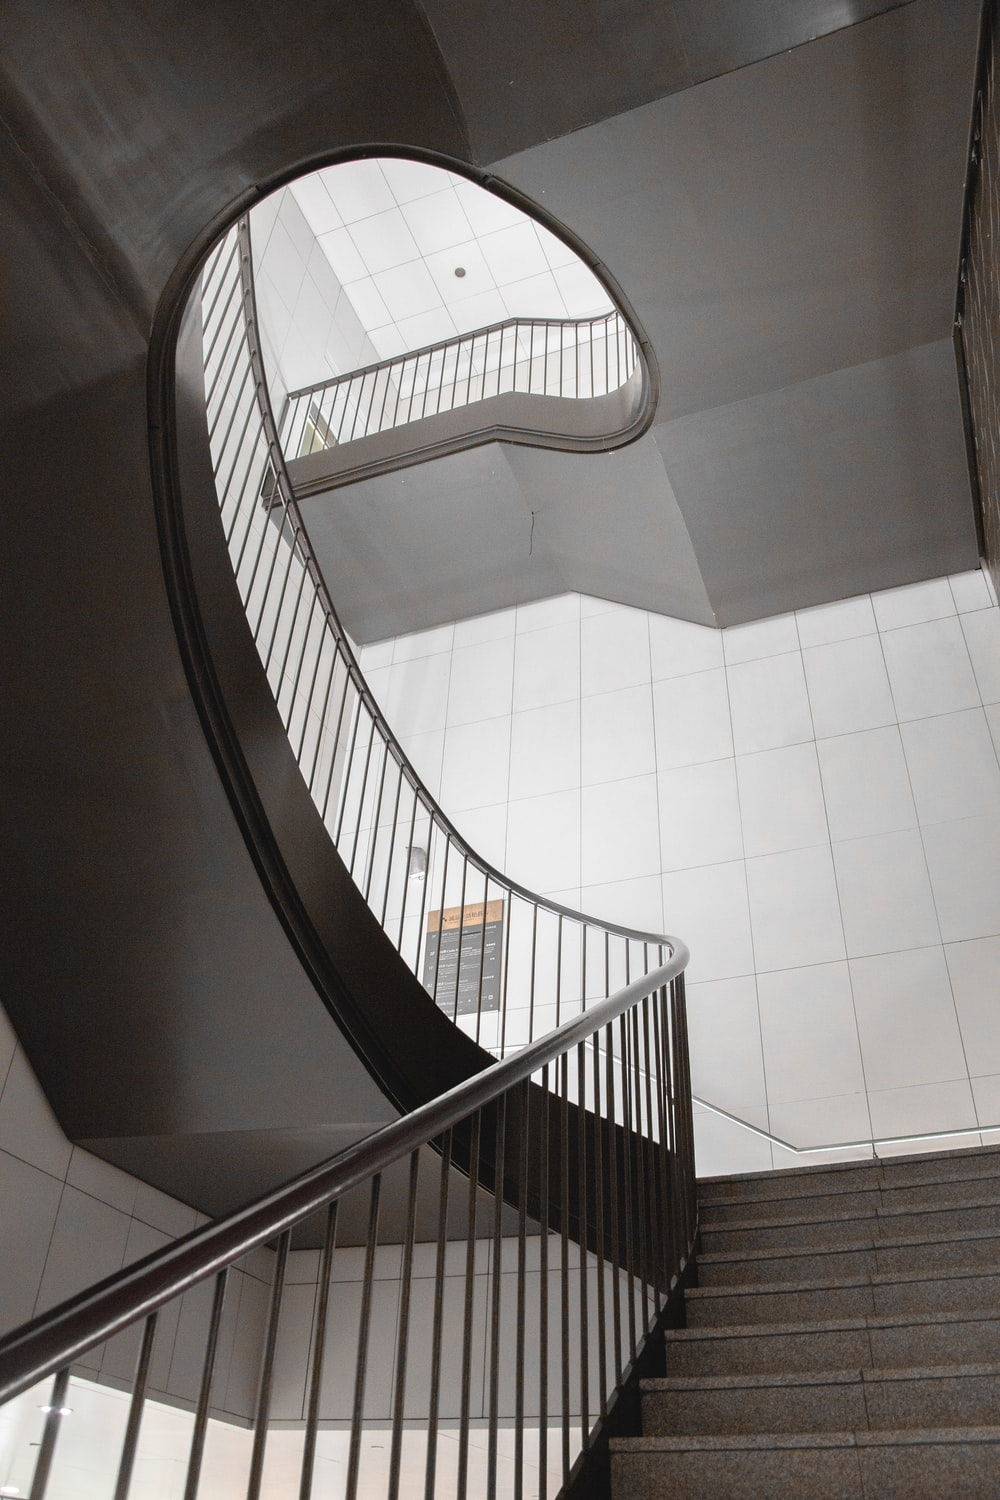 concrete stairs inside buildings